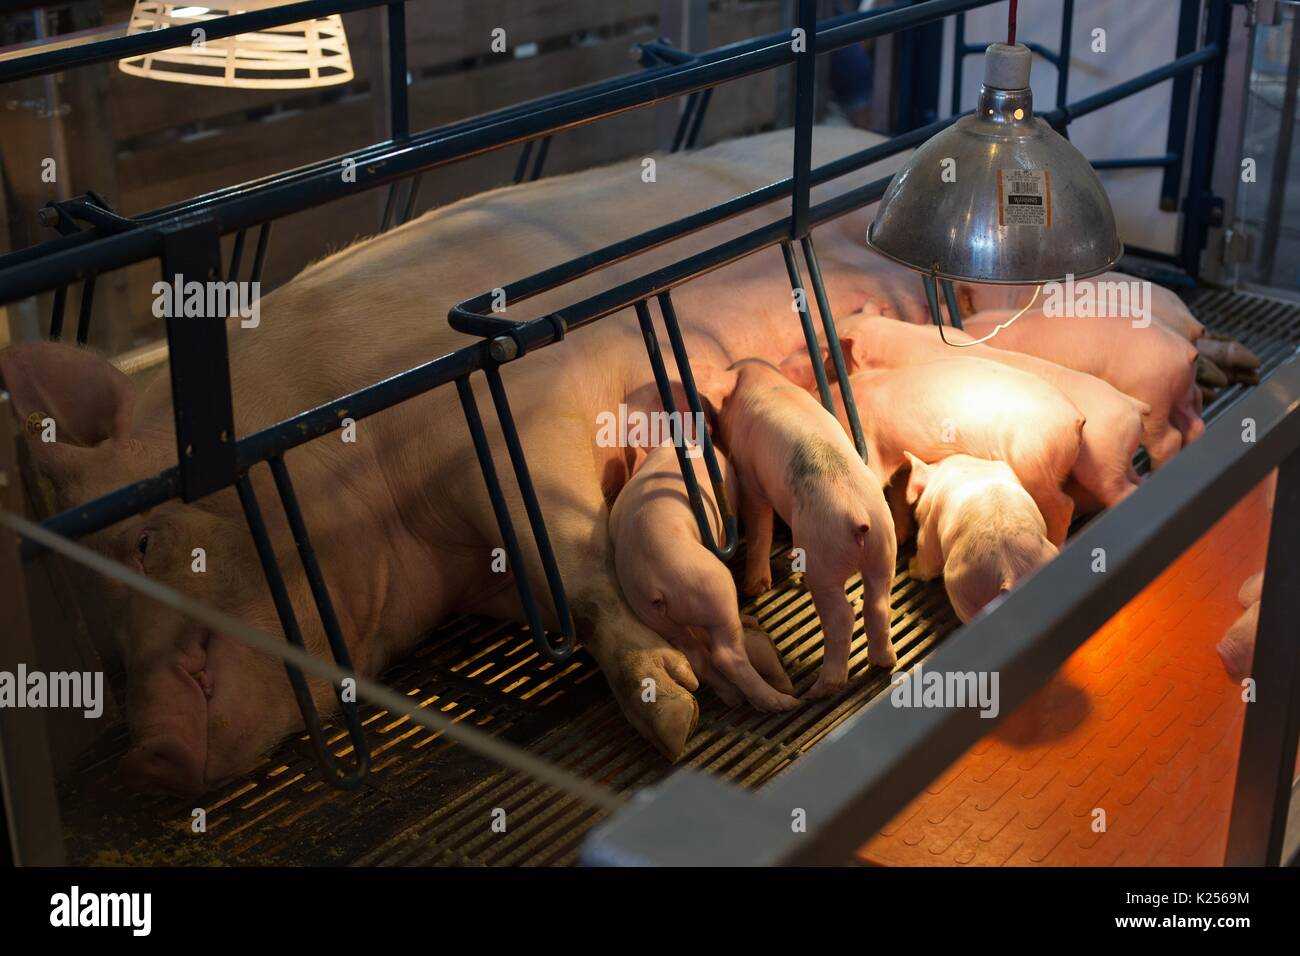 A pig and piglets in a gestation crate. - Stock Image